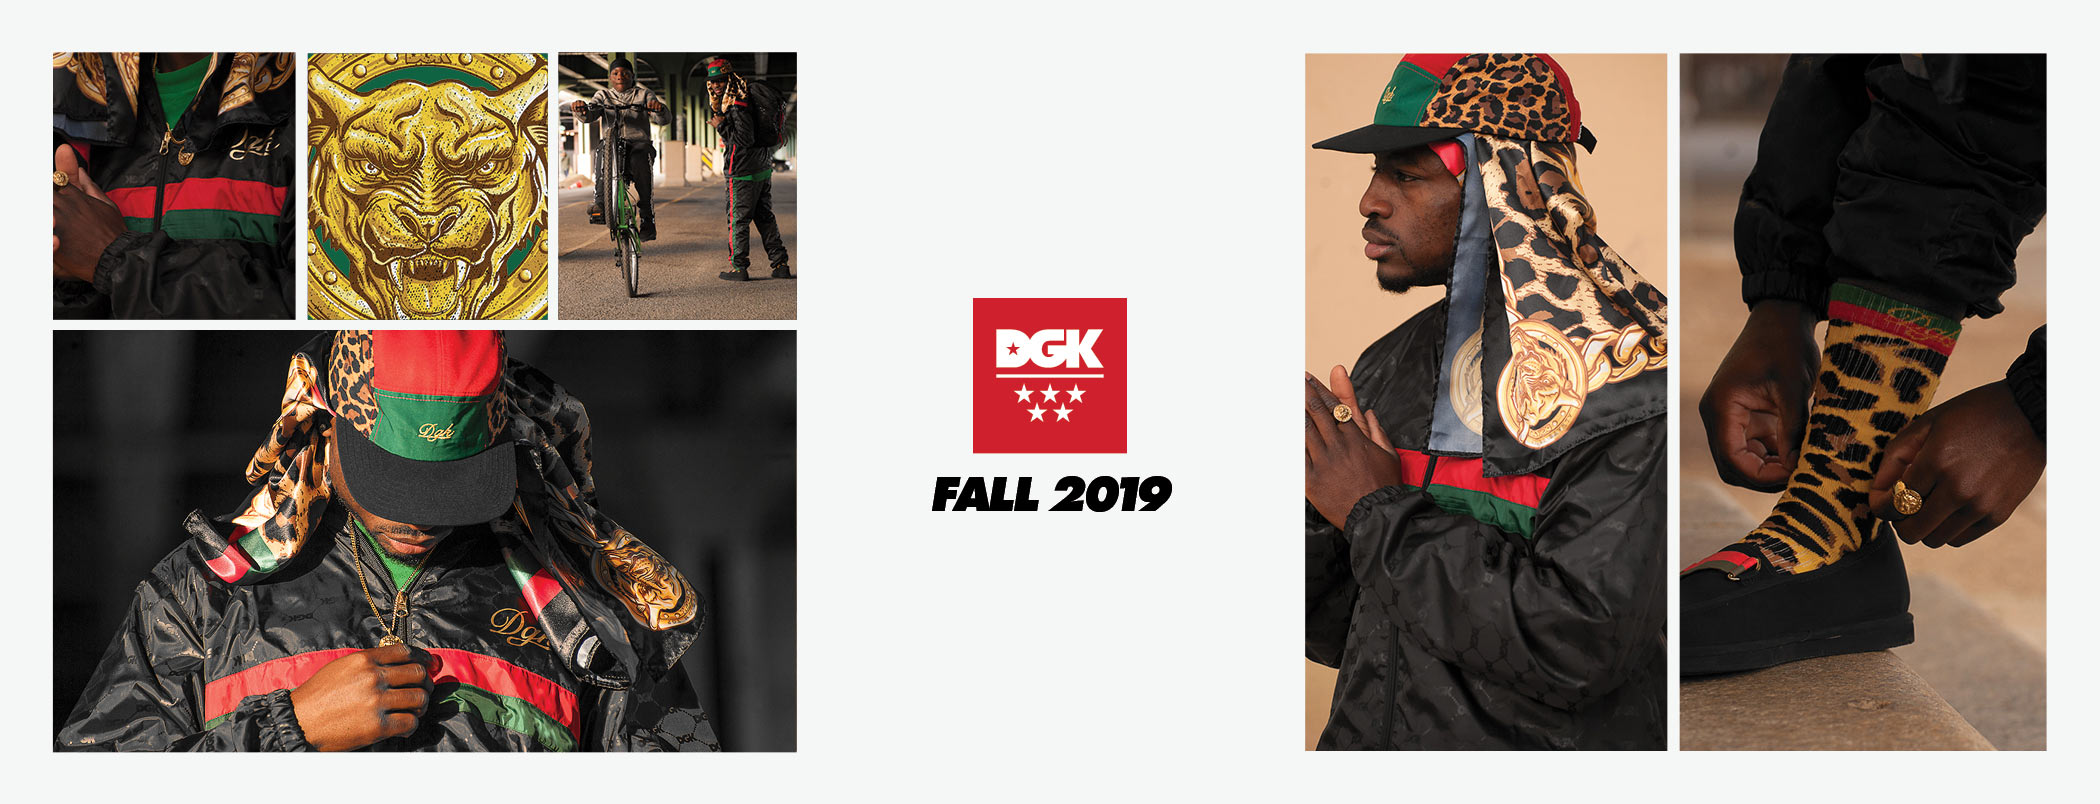 DGK Primo Fall 2019 Collection